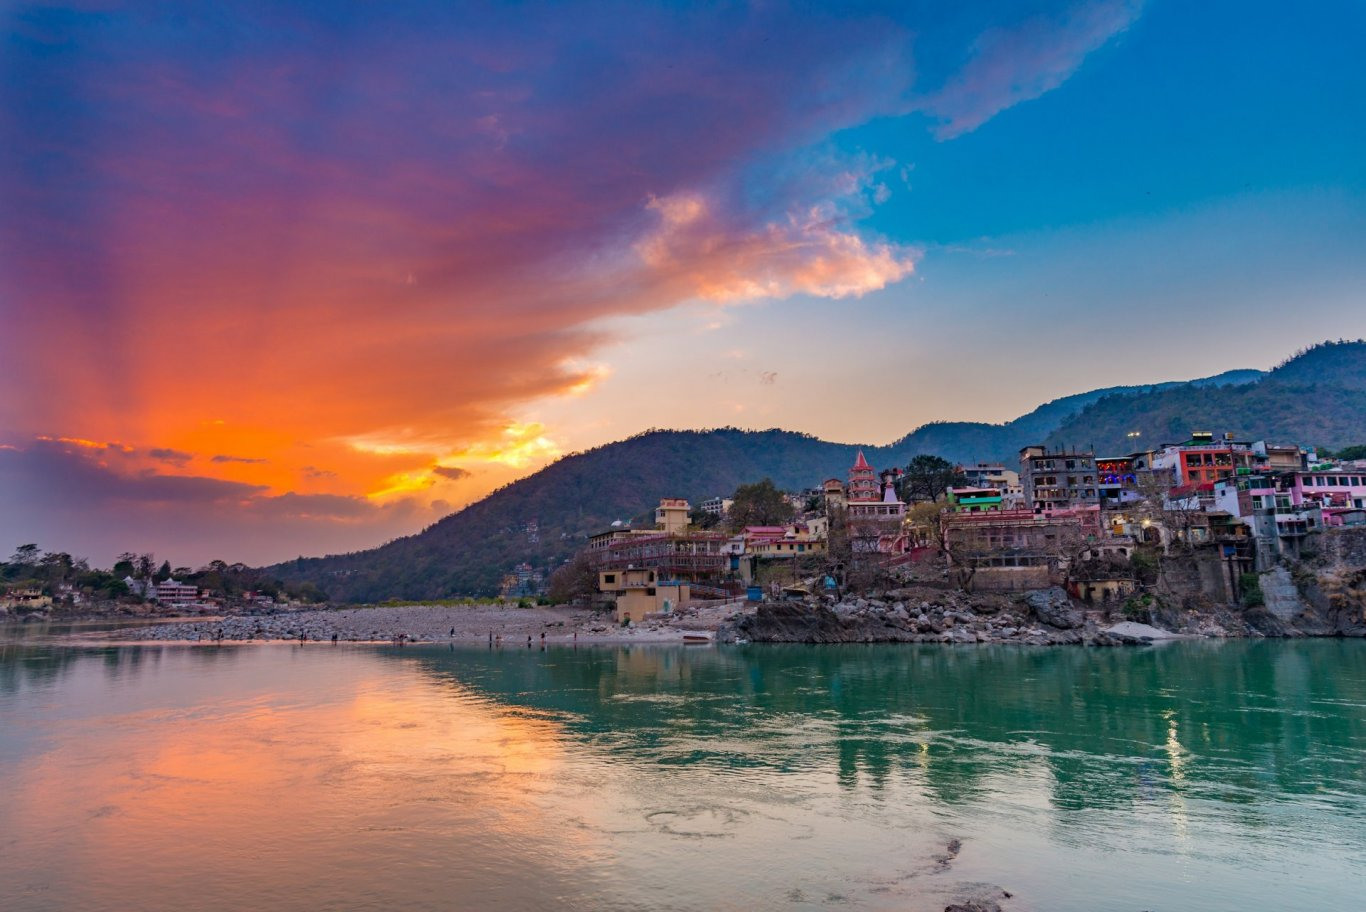 Rishikesh, India. Sunset overlooking Ganges river.